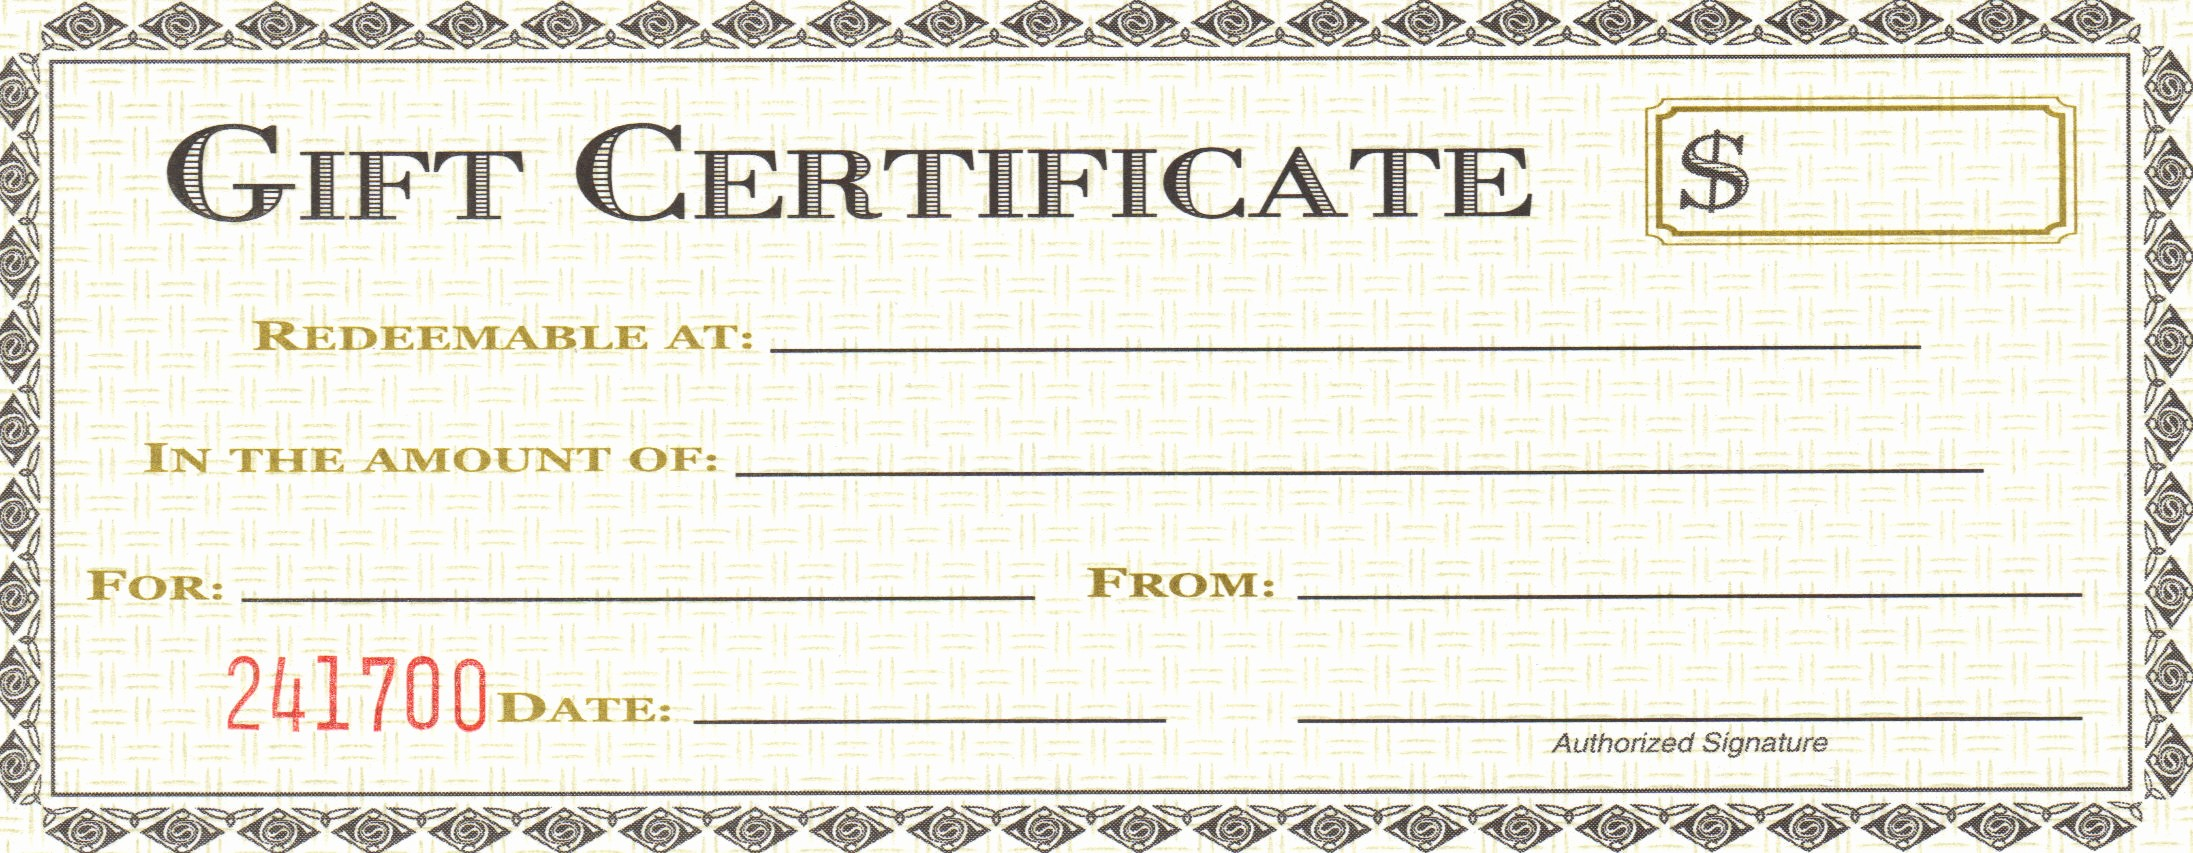 Generic Gift Certificate Template Free New 18 Gift Certificate Templates Excel Pdf formats